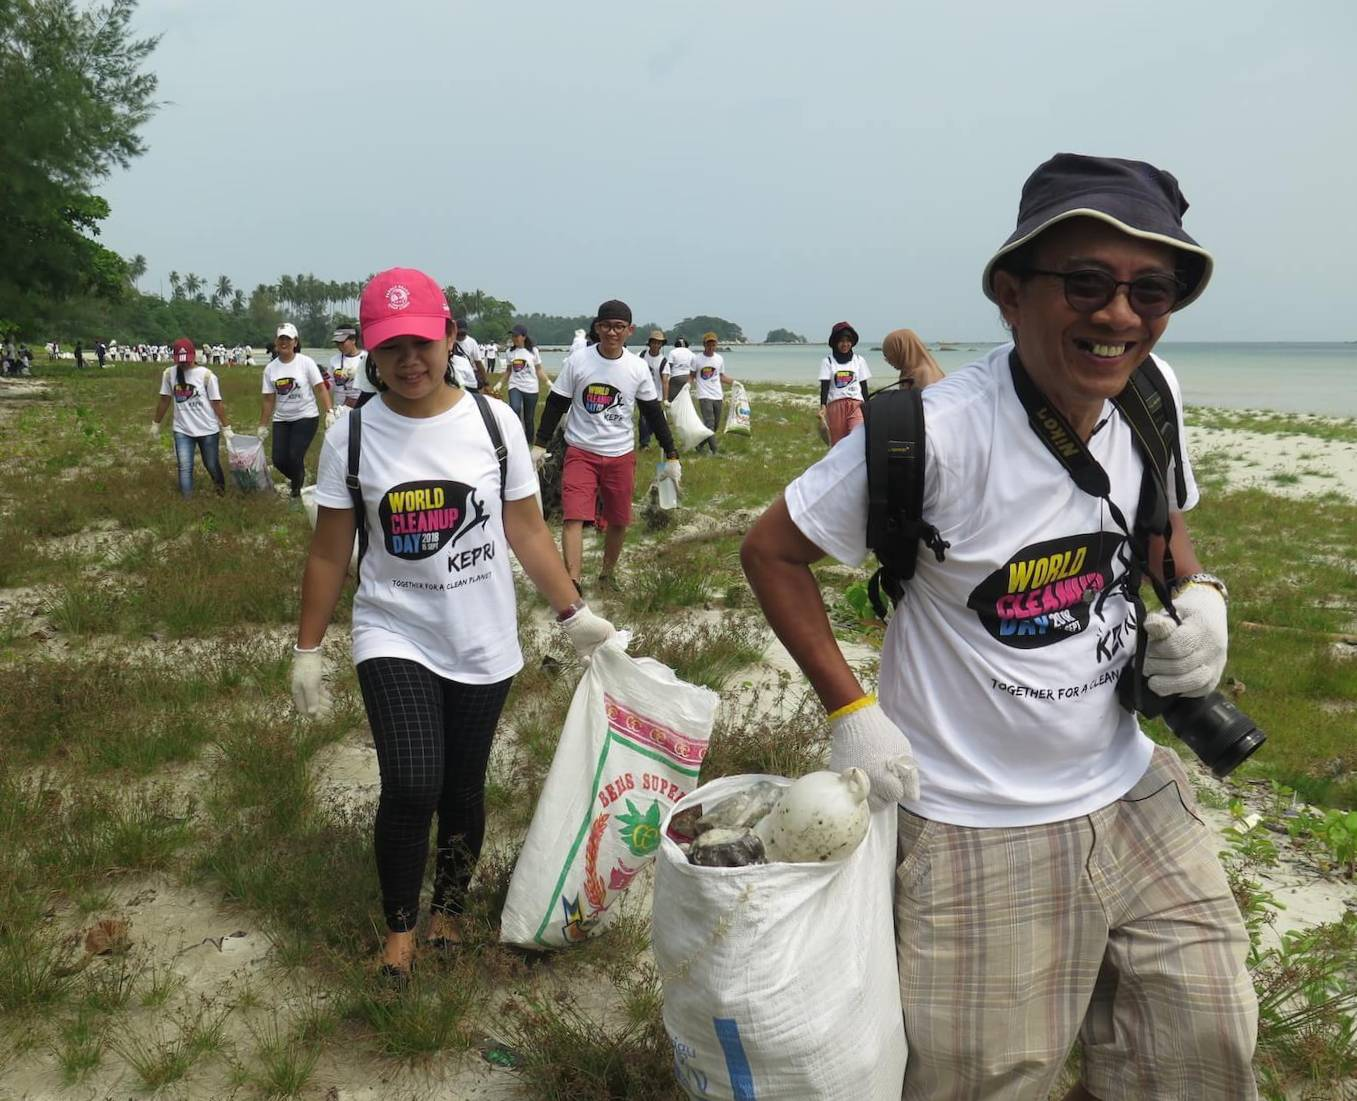 Indonesian man smiling and holding a bag full of plastic waste, a woman behind her and many people in the background, all holding bags with garbage and walking on the beach.